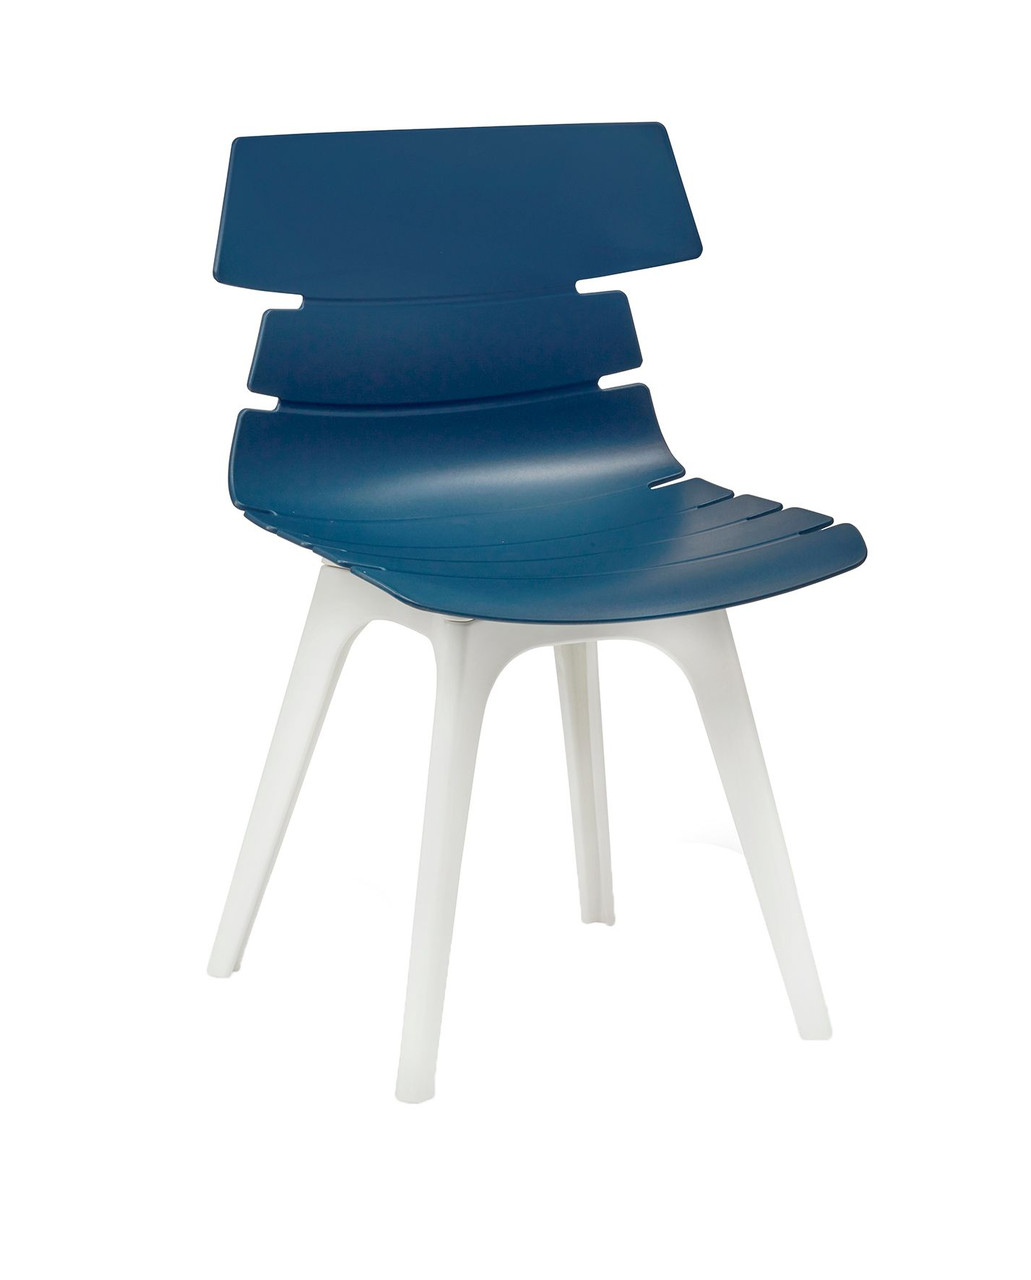 Hoxton Side Chair (Navy Blue)